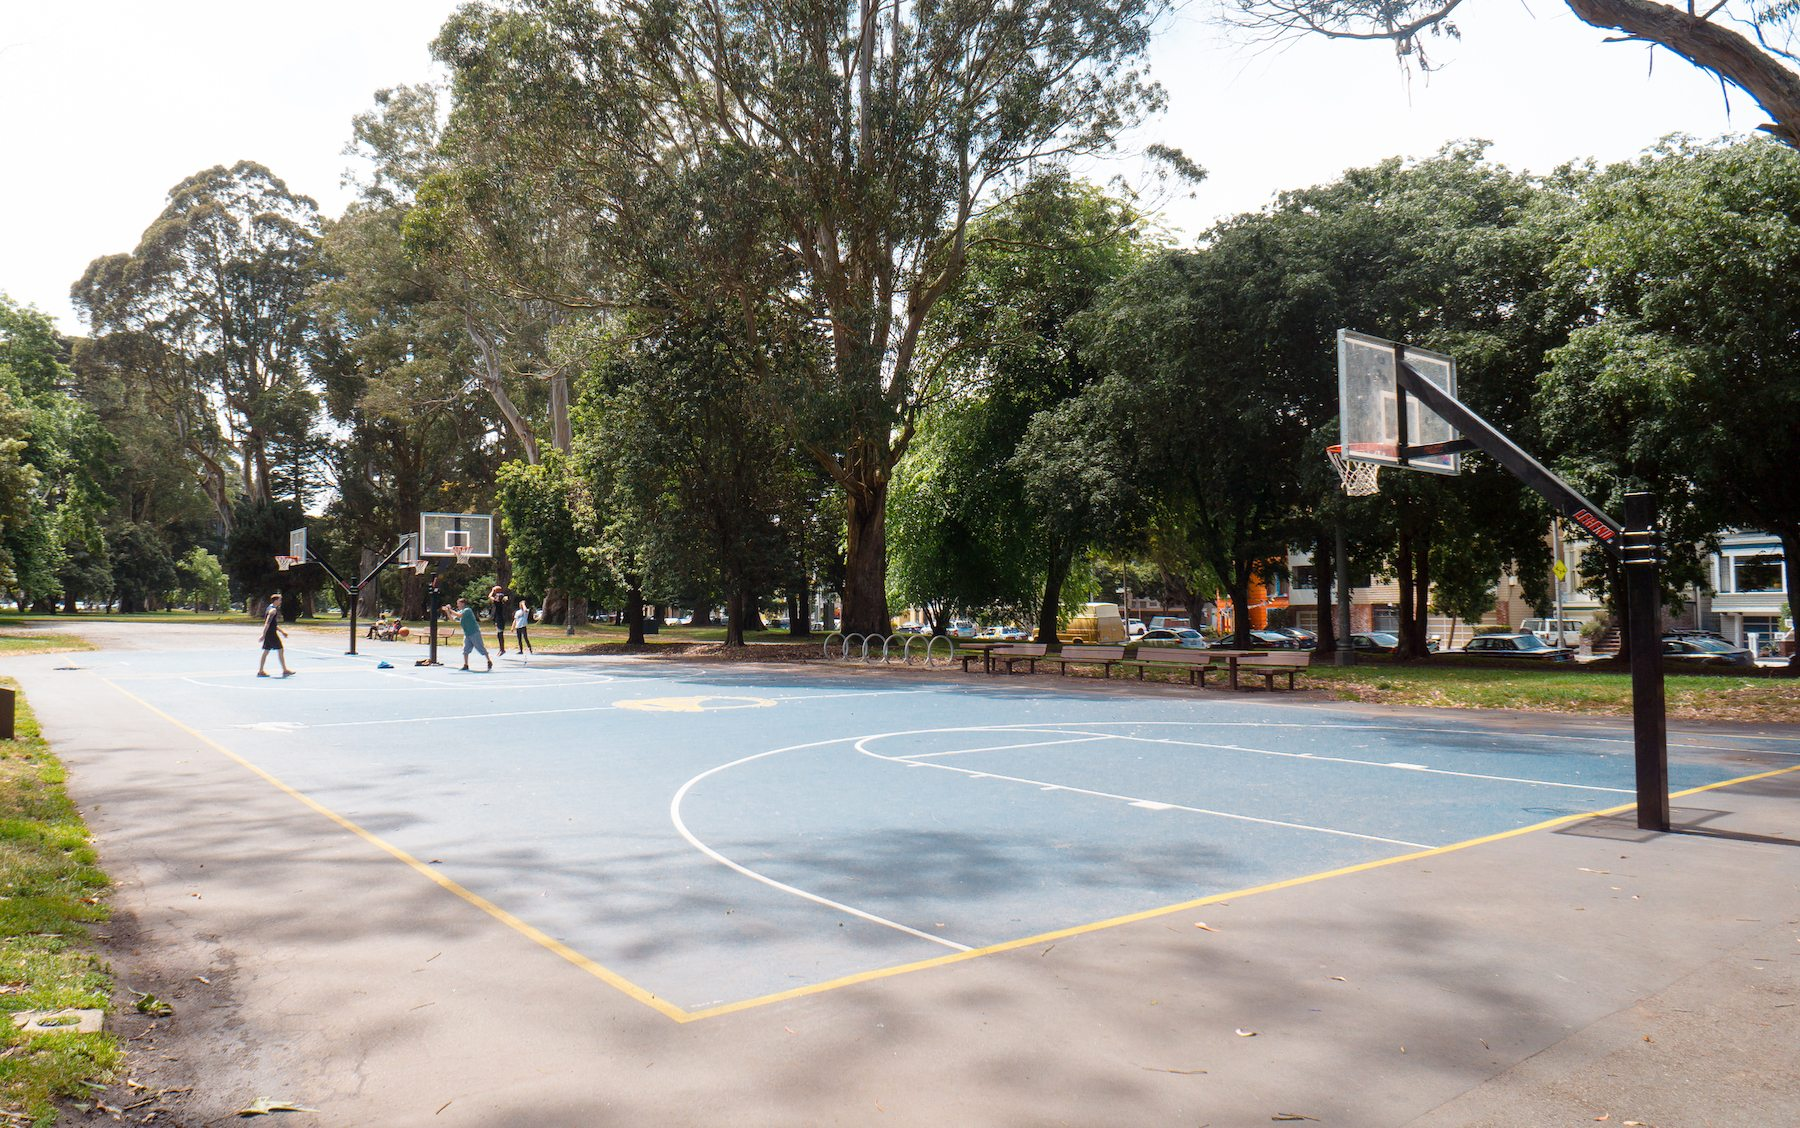 Basketball Courts at Panhandle. Photo: Justin Wong, 49miles.com.